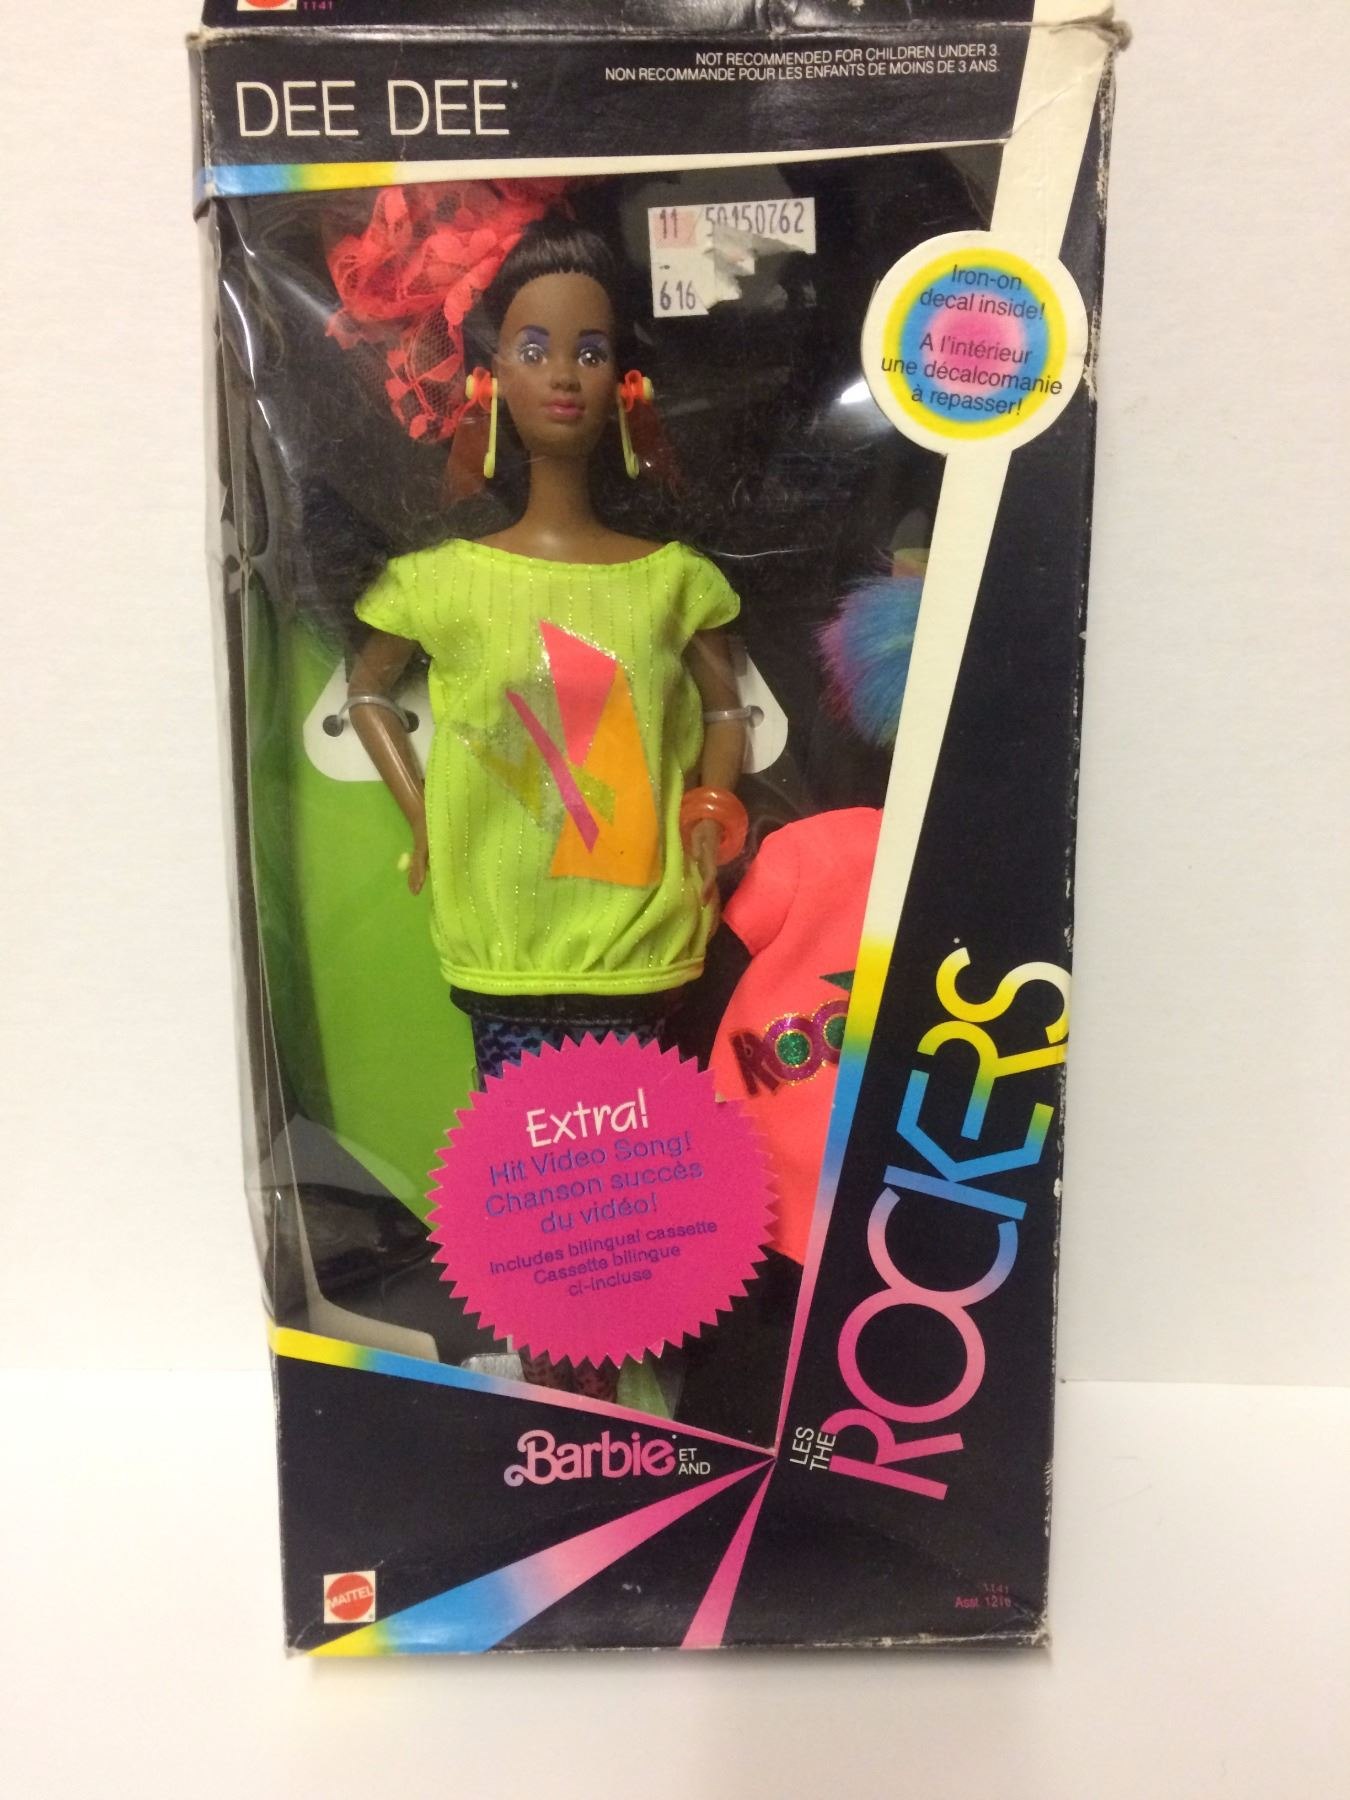 Image 1 NEW IN BOX 1985 BARBIE AND THE ROCKERS DOLL DEE MATTEL VINTAGE